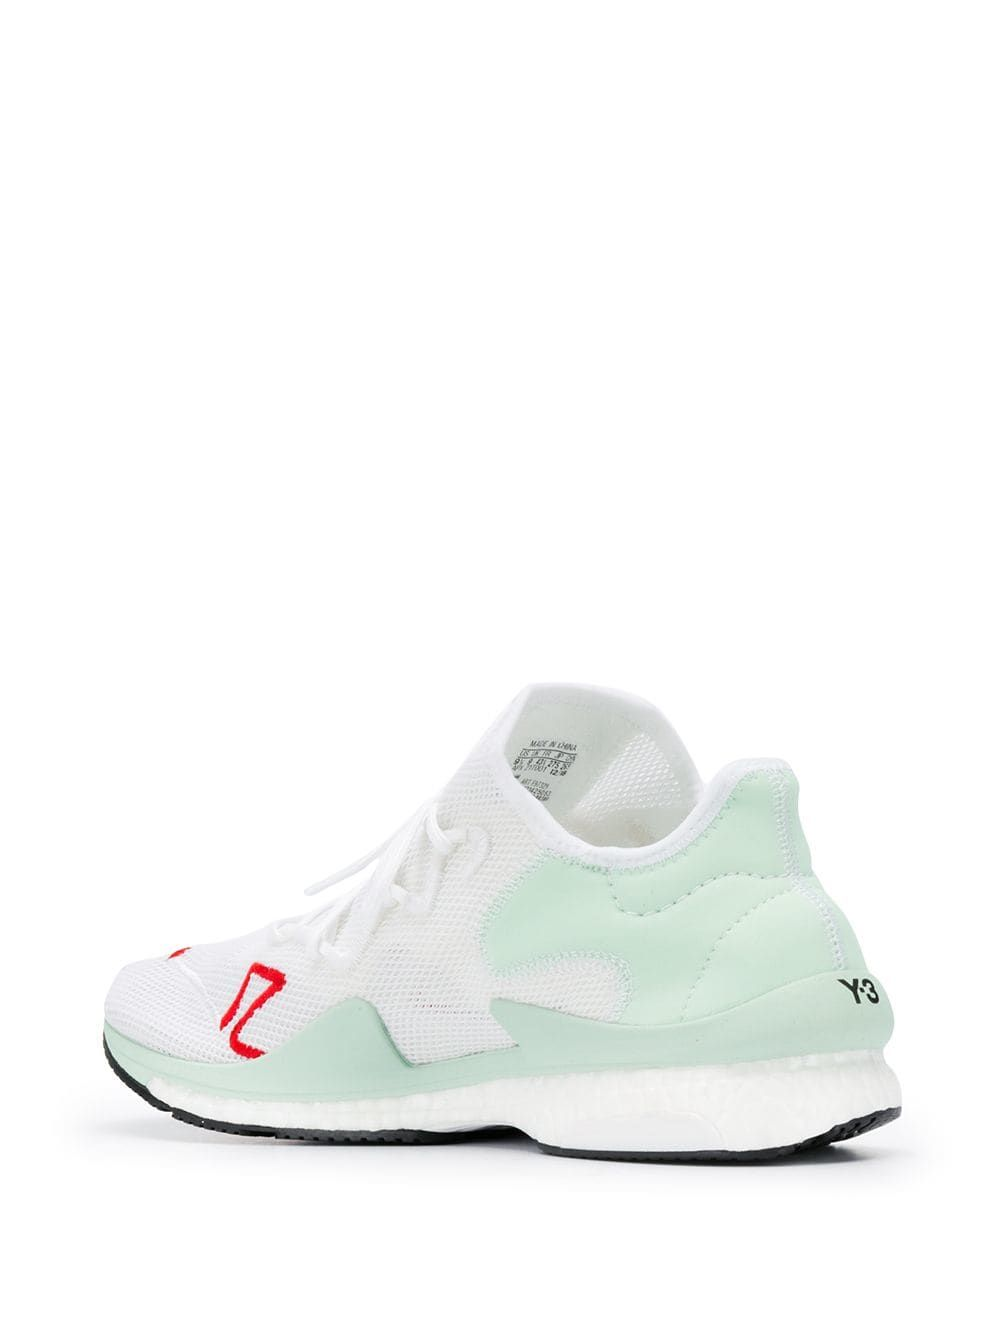 0fb72db281f Y-3 mesh upper sneakers  292 - Shop SS19 Online - Fast Delivery